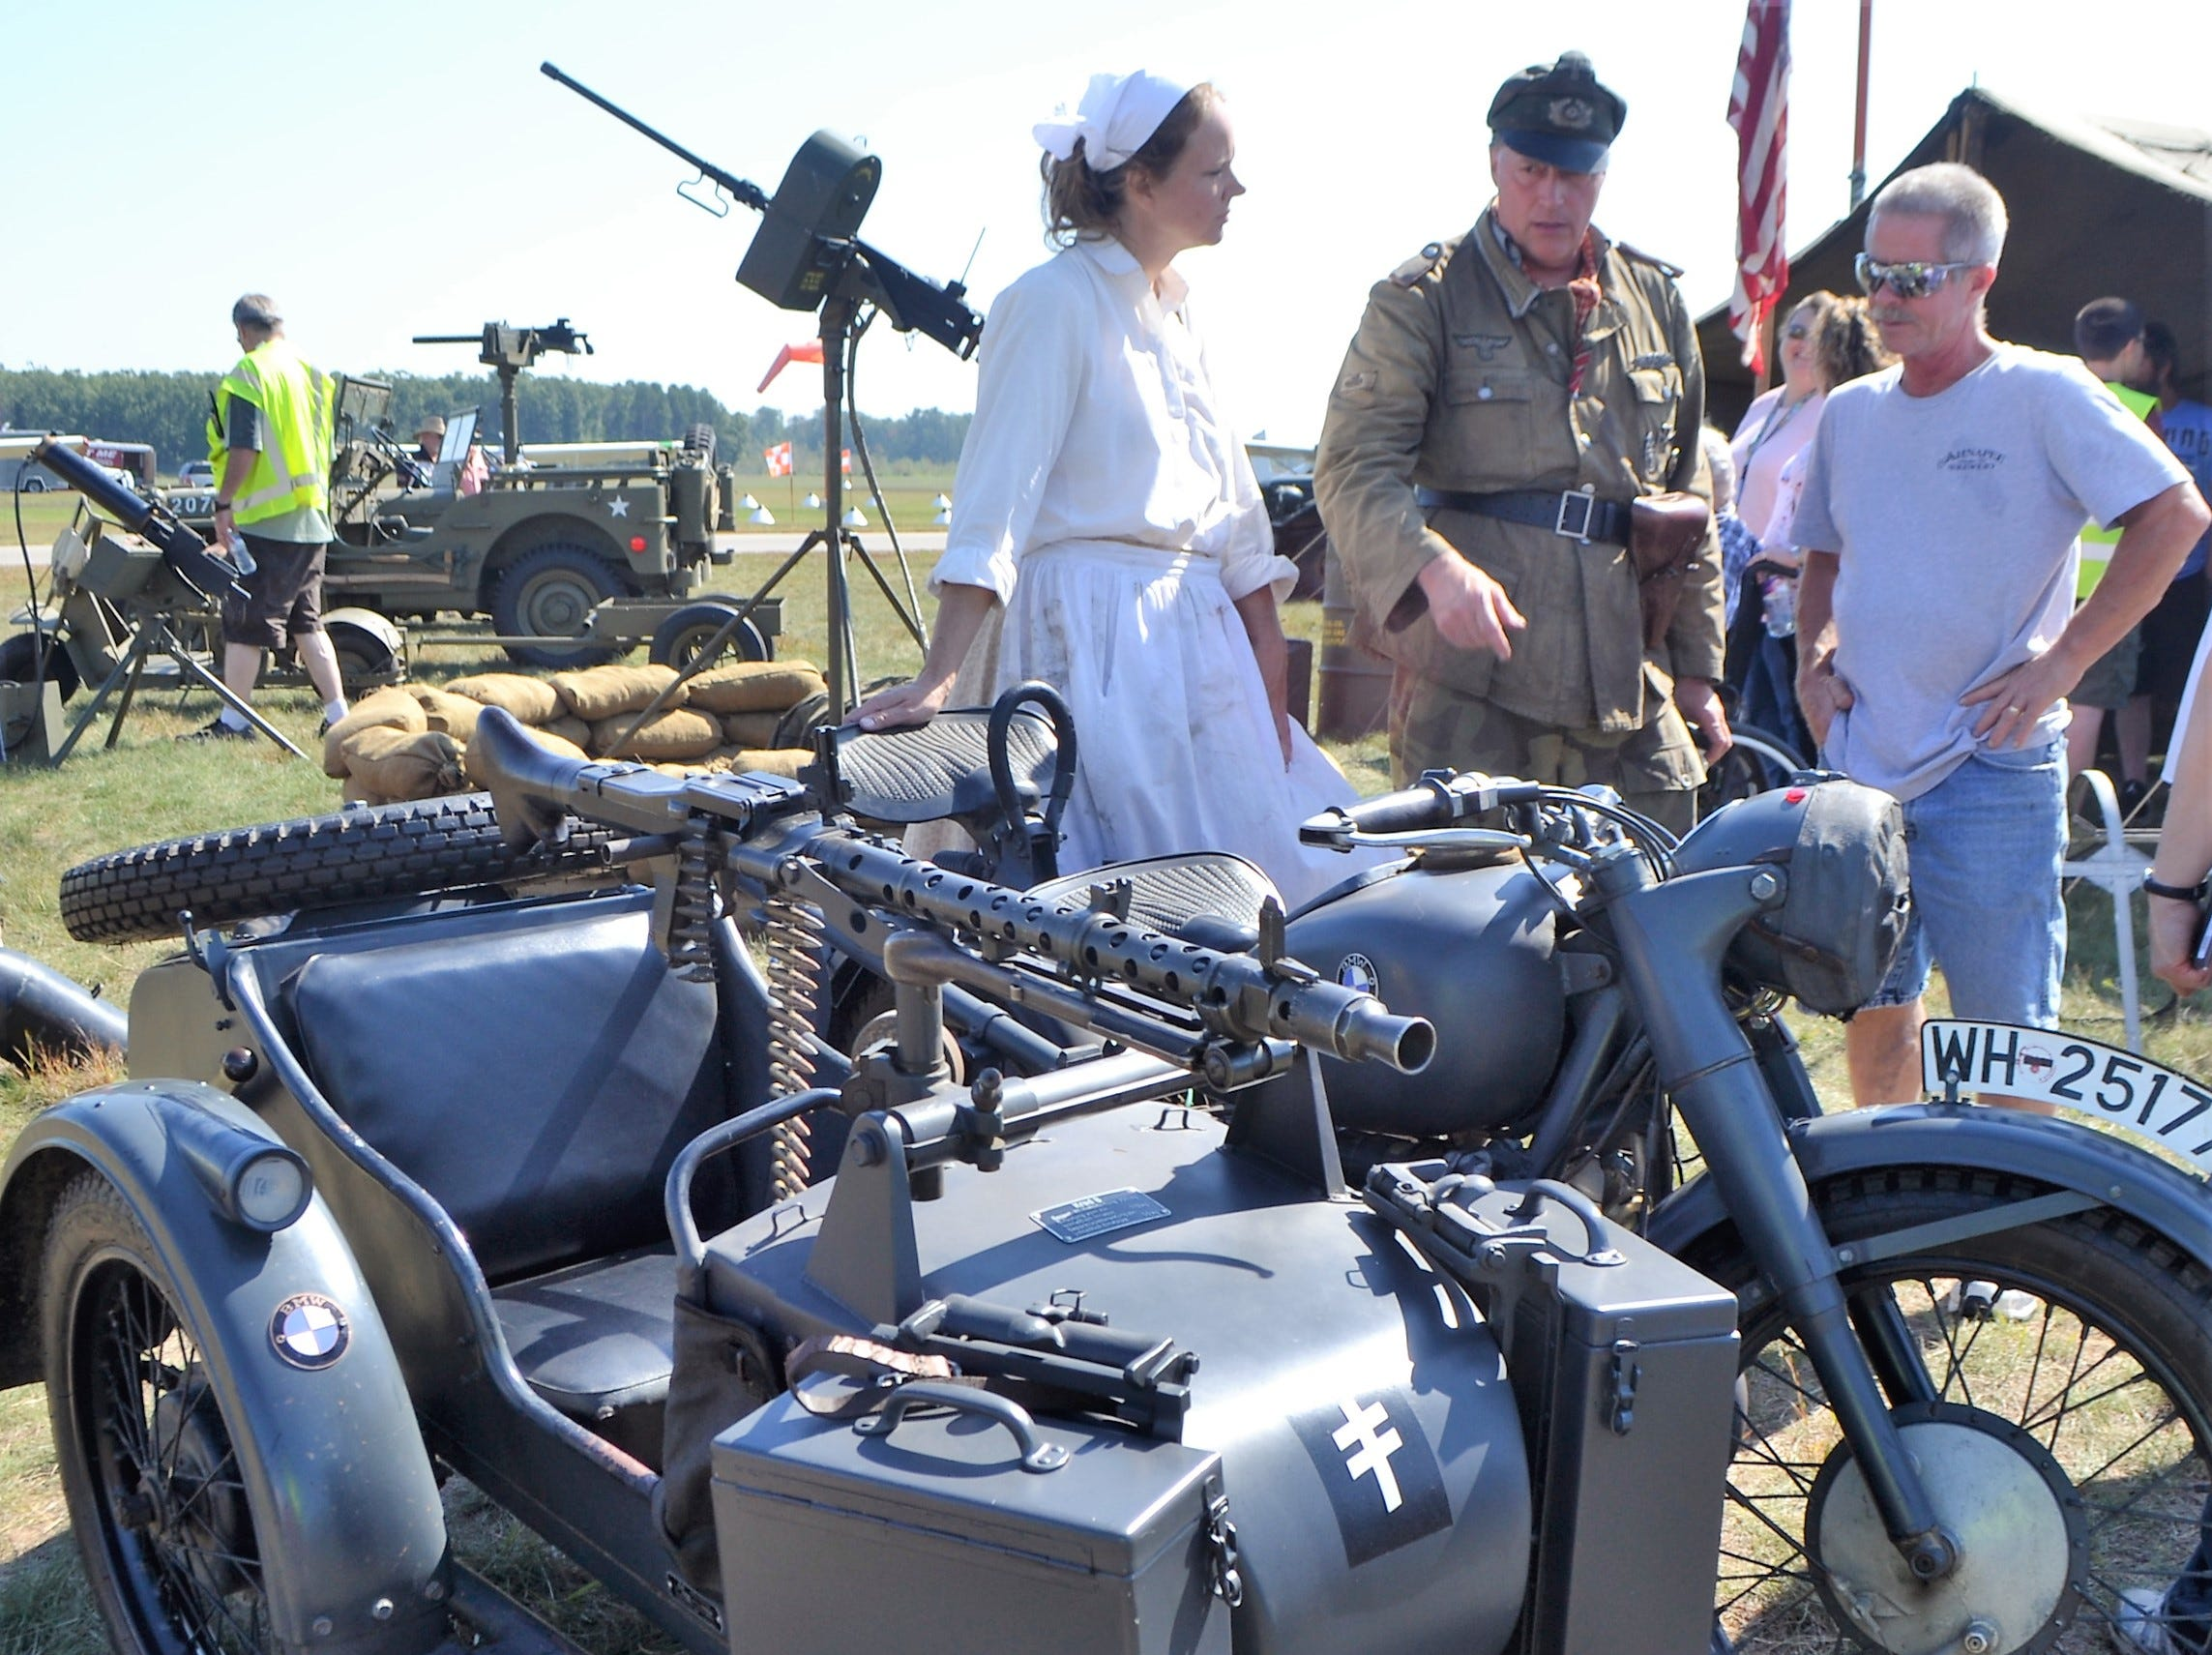 Jeff Ellinger, center, explains his 1939 BMW motorcycle, used by the German Army in WWII, to Scott Kaufman of Pulaski at the Oconto Fly-in, Car & Tractor Show on Sept. 15 at the Oconto-J. Douglas Bake Municipal Airport. Ellinger is wearing the uniform of the German soldier in the Panzer division 3rd Unit, while his wife is dressed as a German peasant. The gun mounted on the sidecar is an 8mm machine pistol.